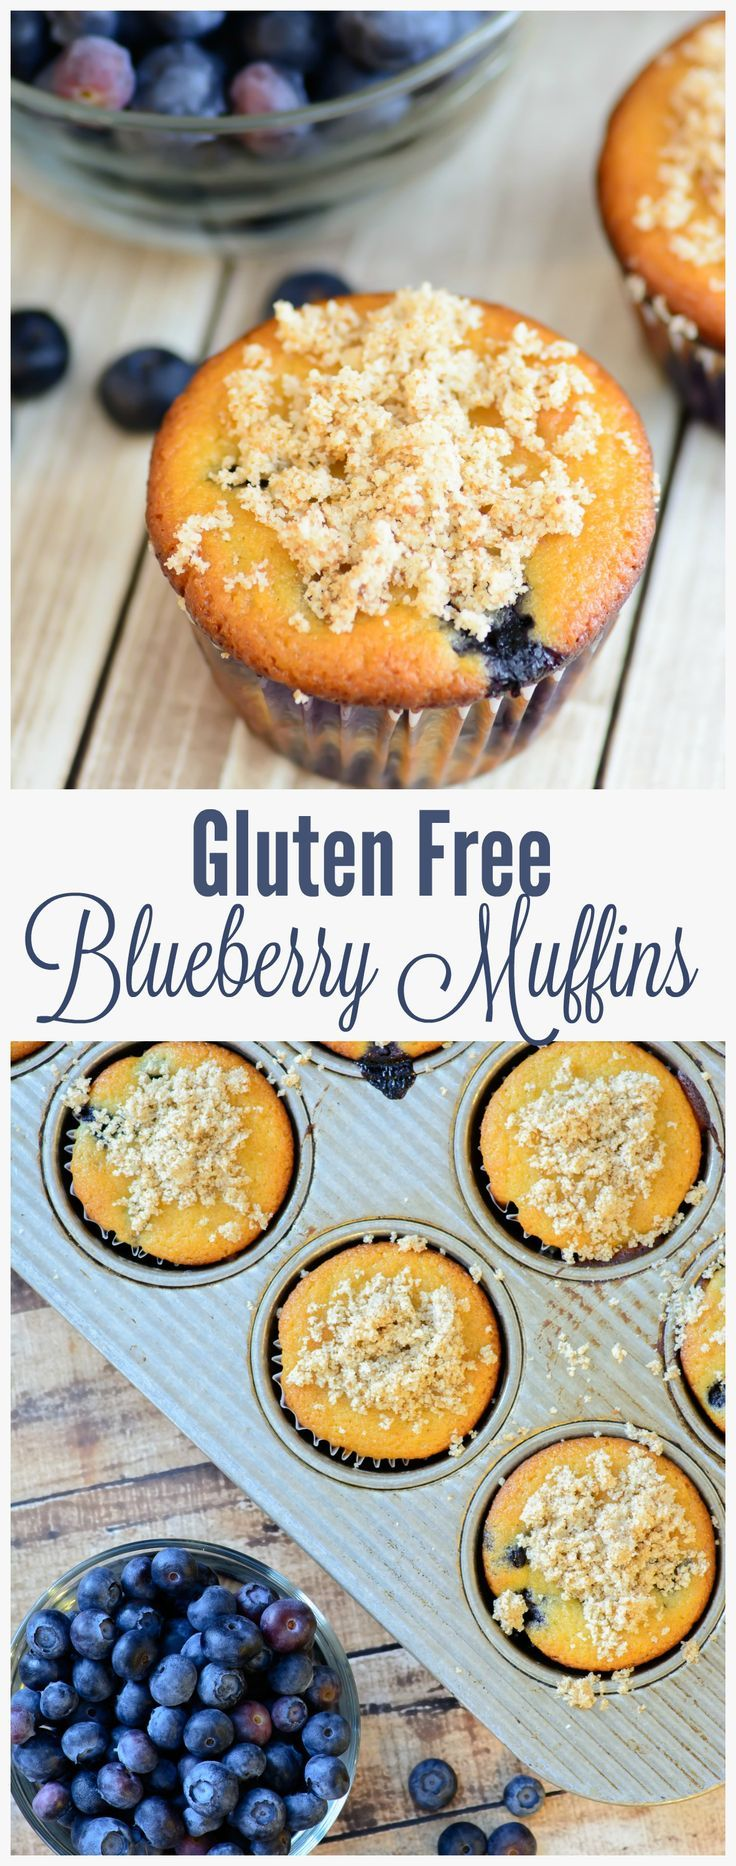 Paleo And Gluten Free Blueberry Muffins Moist And Full Of Flavor